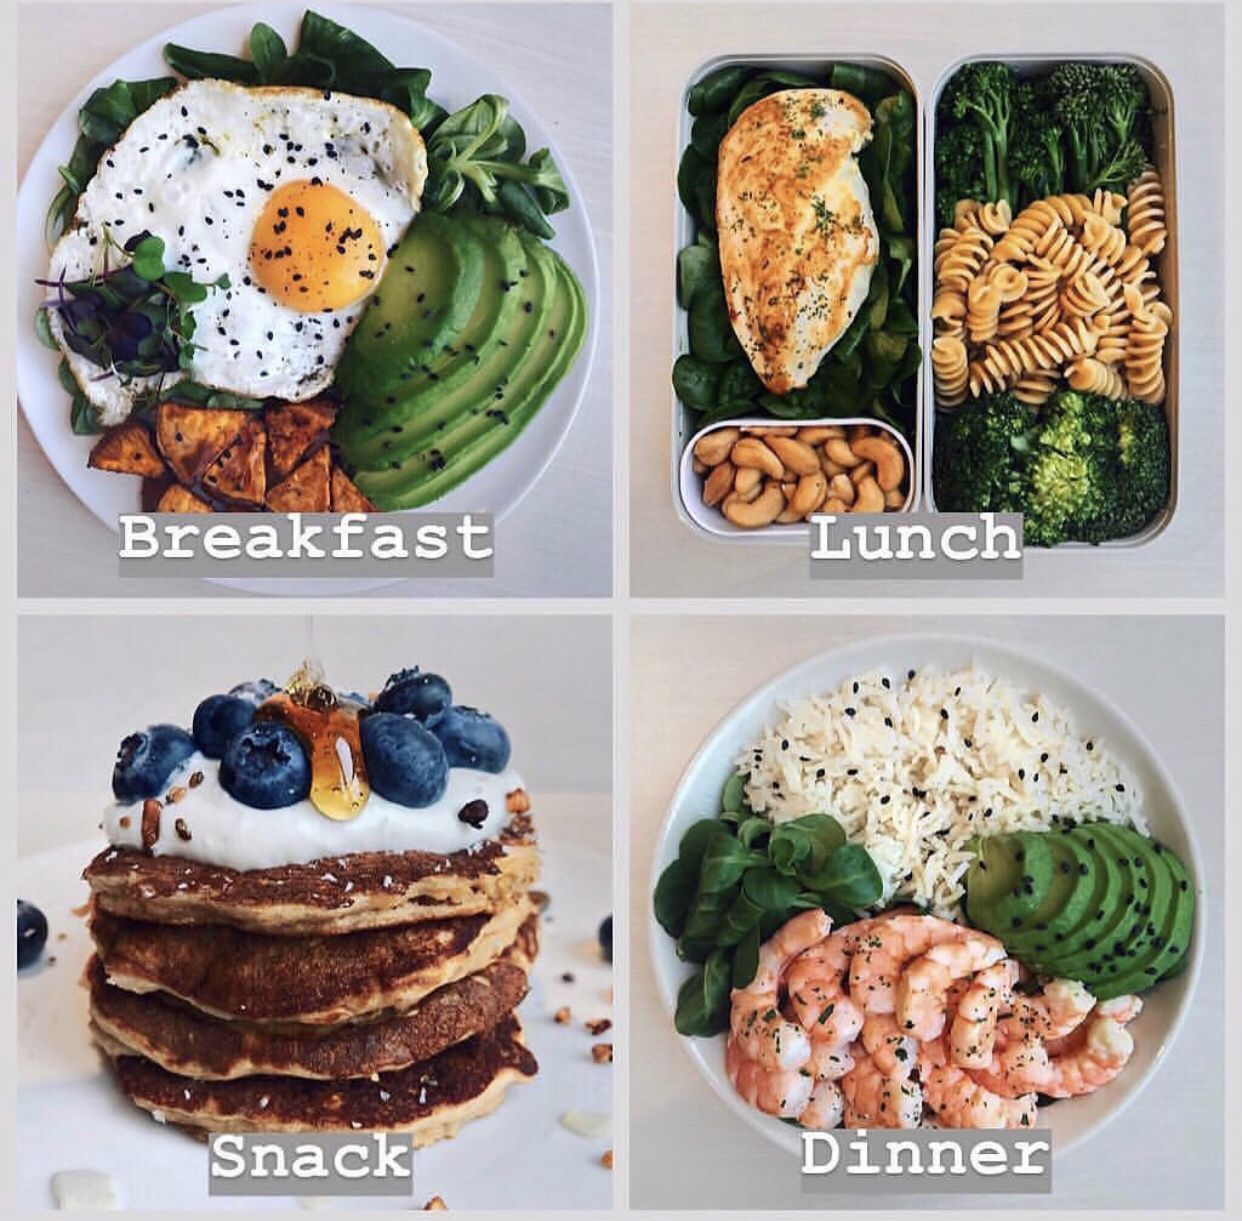 Pin By Sarah Mott On Healthy Plant Based Healty Food Workout Food Food